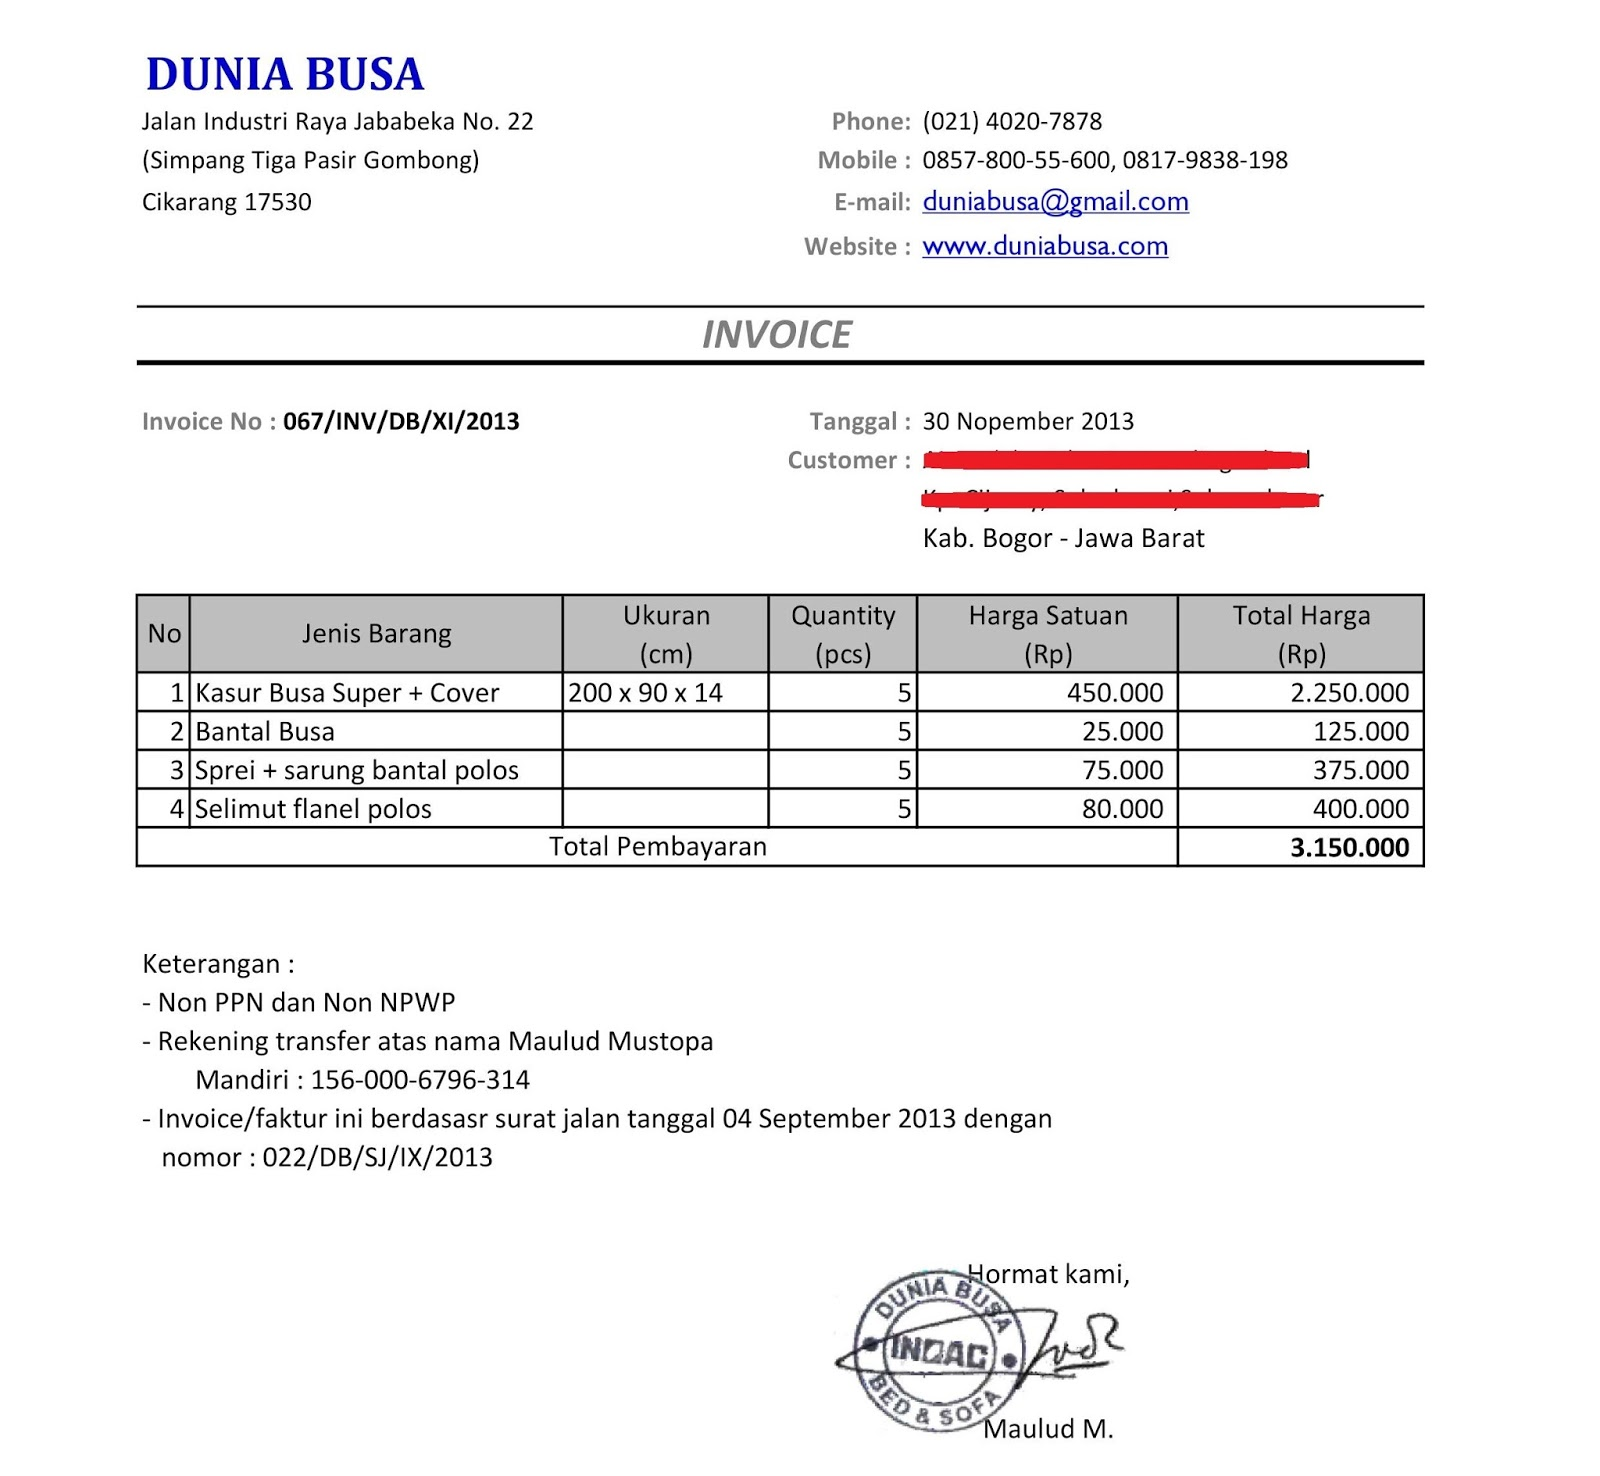 Aldiablosus  Unique Free Invoice Online  Create Invoice Online  Invoice Template  With Lovable Contoh Format Invoice Atau Surat Tagihan  Brankas Arsip  Free Invoice Online With Extraordinary Payment Invoice Sample Also How To Print An Invoice In Addition International Invoice Template And Invoice With Logo As Well As Paying An Invoice Additionally Definition Of Invoice In Accounting From Sklepco With Aldiablosus  Lovable Free Invoice Online  Create Invoice Online  Invoice Template  With Extraordinary Contoh Format Invoice Atau Surat Tagihan  Brankas Arsip  Free Invoice Online And Unique Payment Invoice Sample Also How To Print An Invoice In Addition International Invoice Template From Sklepco